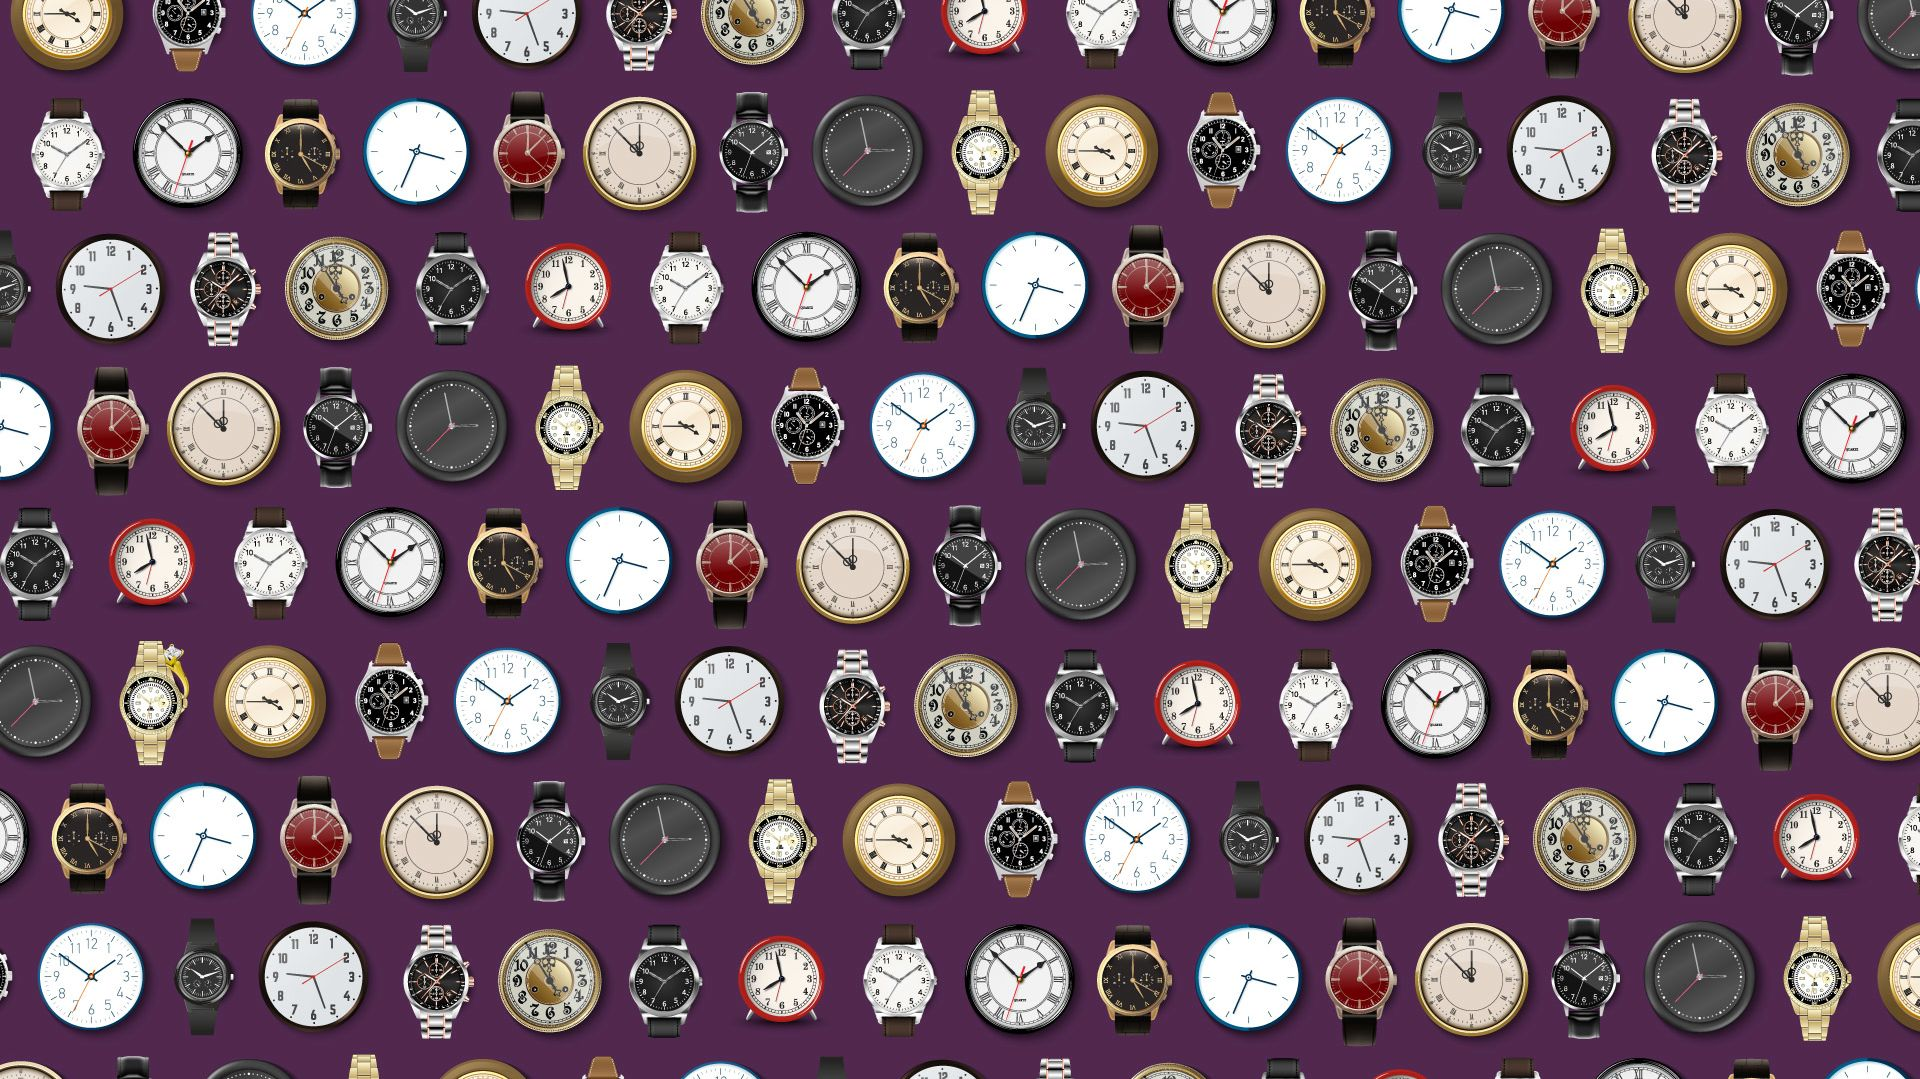 Hidden Object Engagement Ring Among Watches Mental Floss